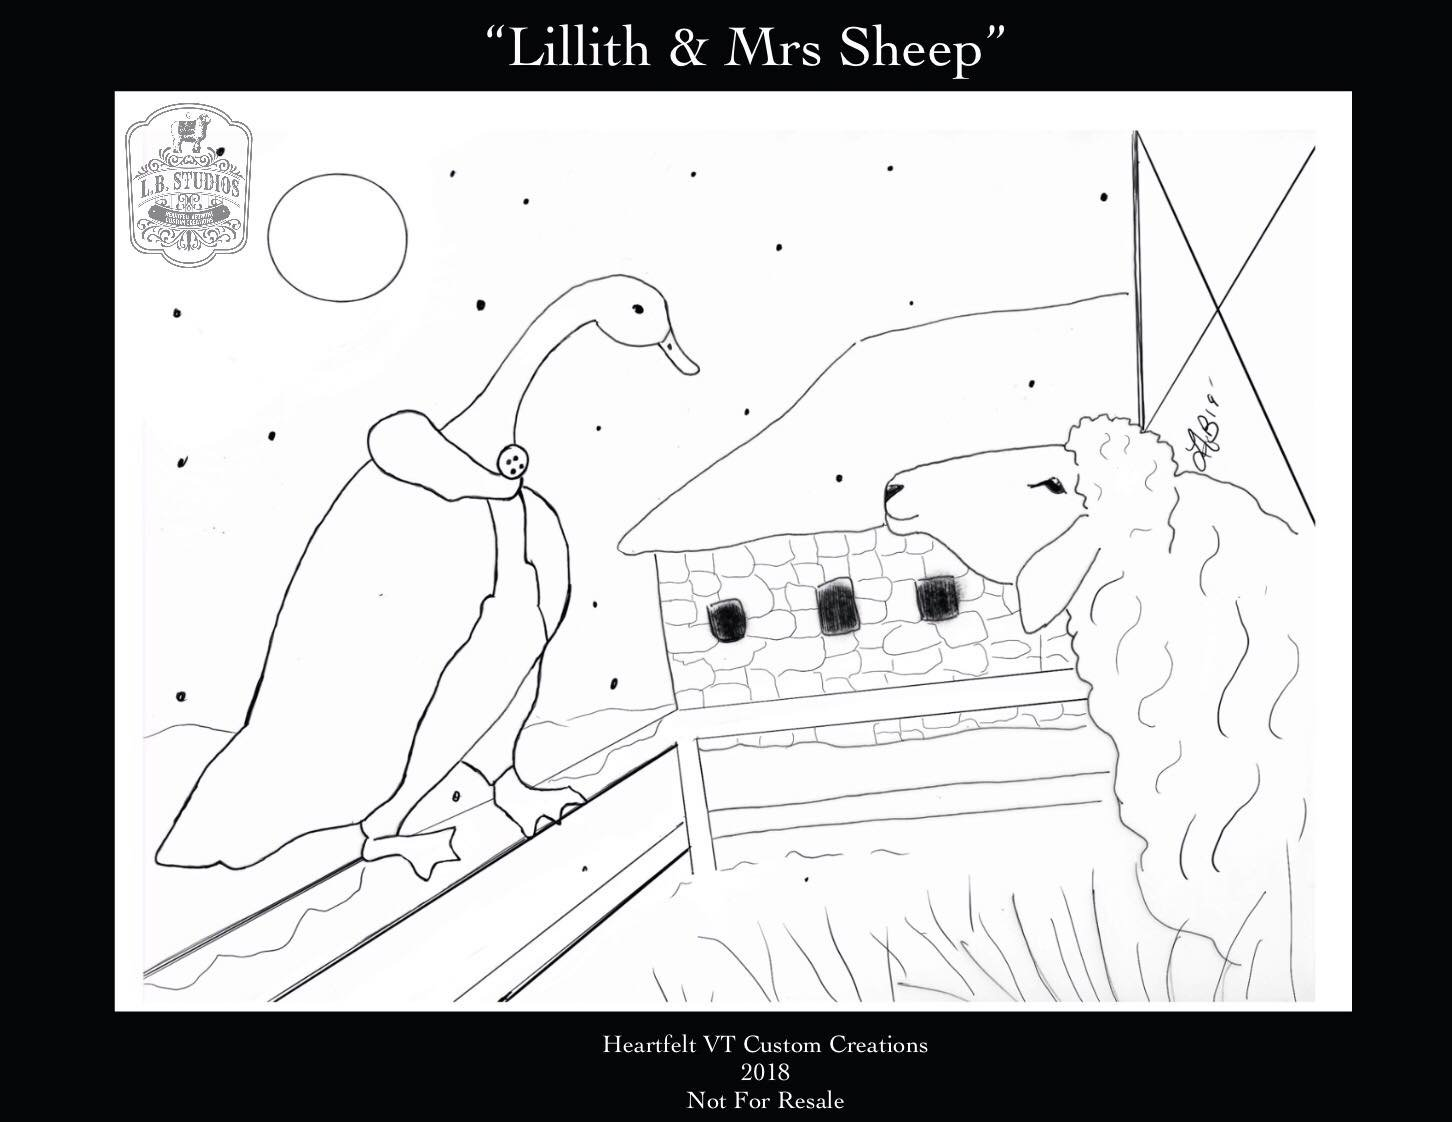 Lillith & Mrs. Sheep